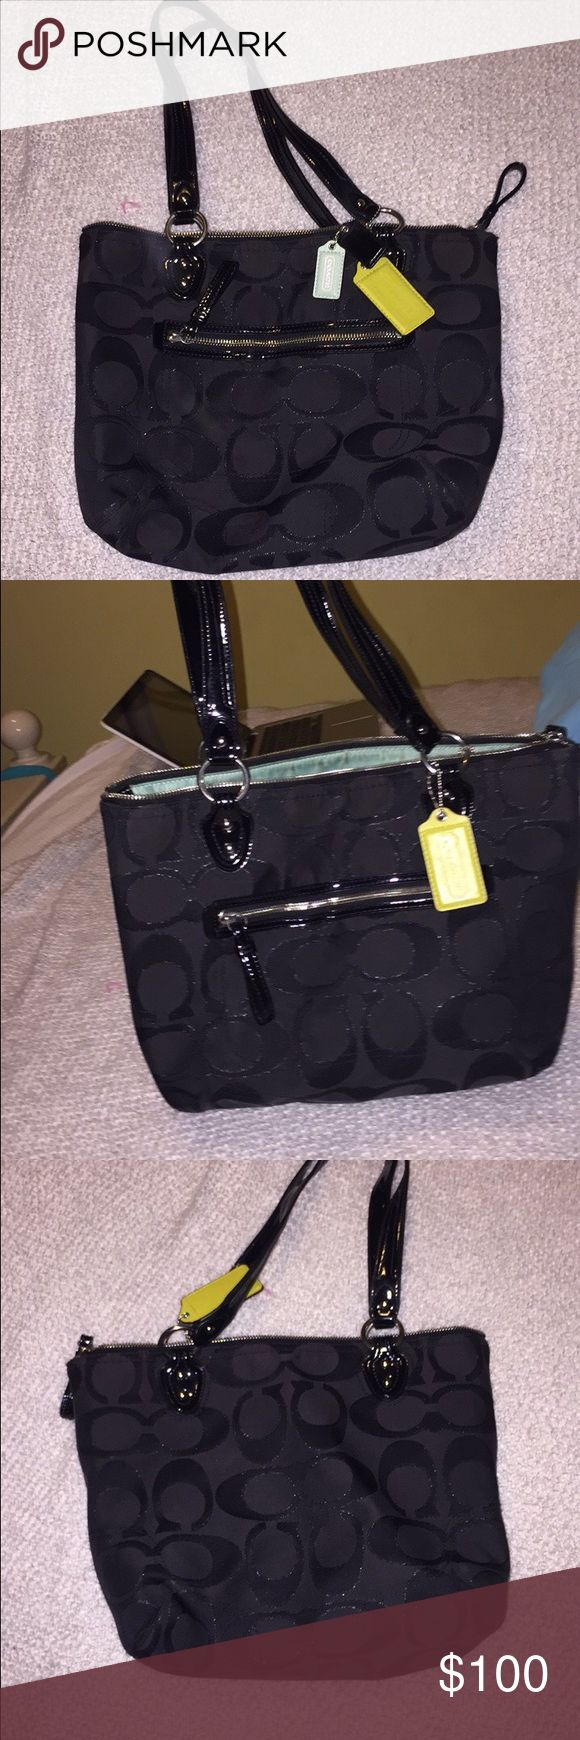 Authentic Coach Purse Good condition. Black Coach tote Coach Bags Totes